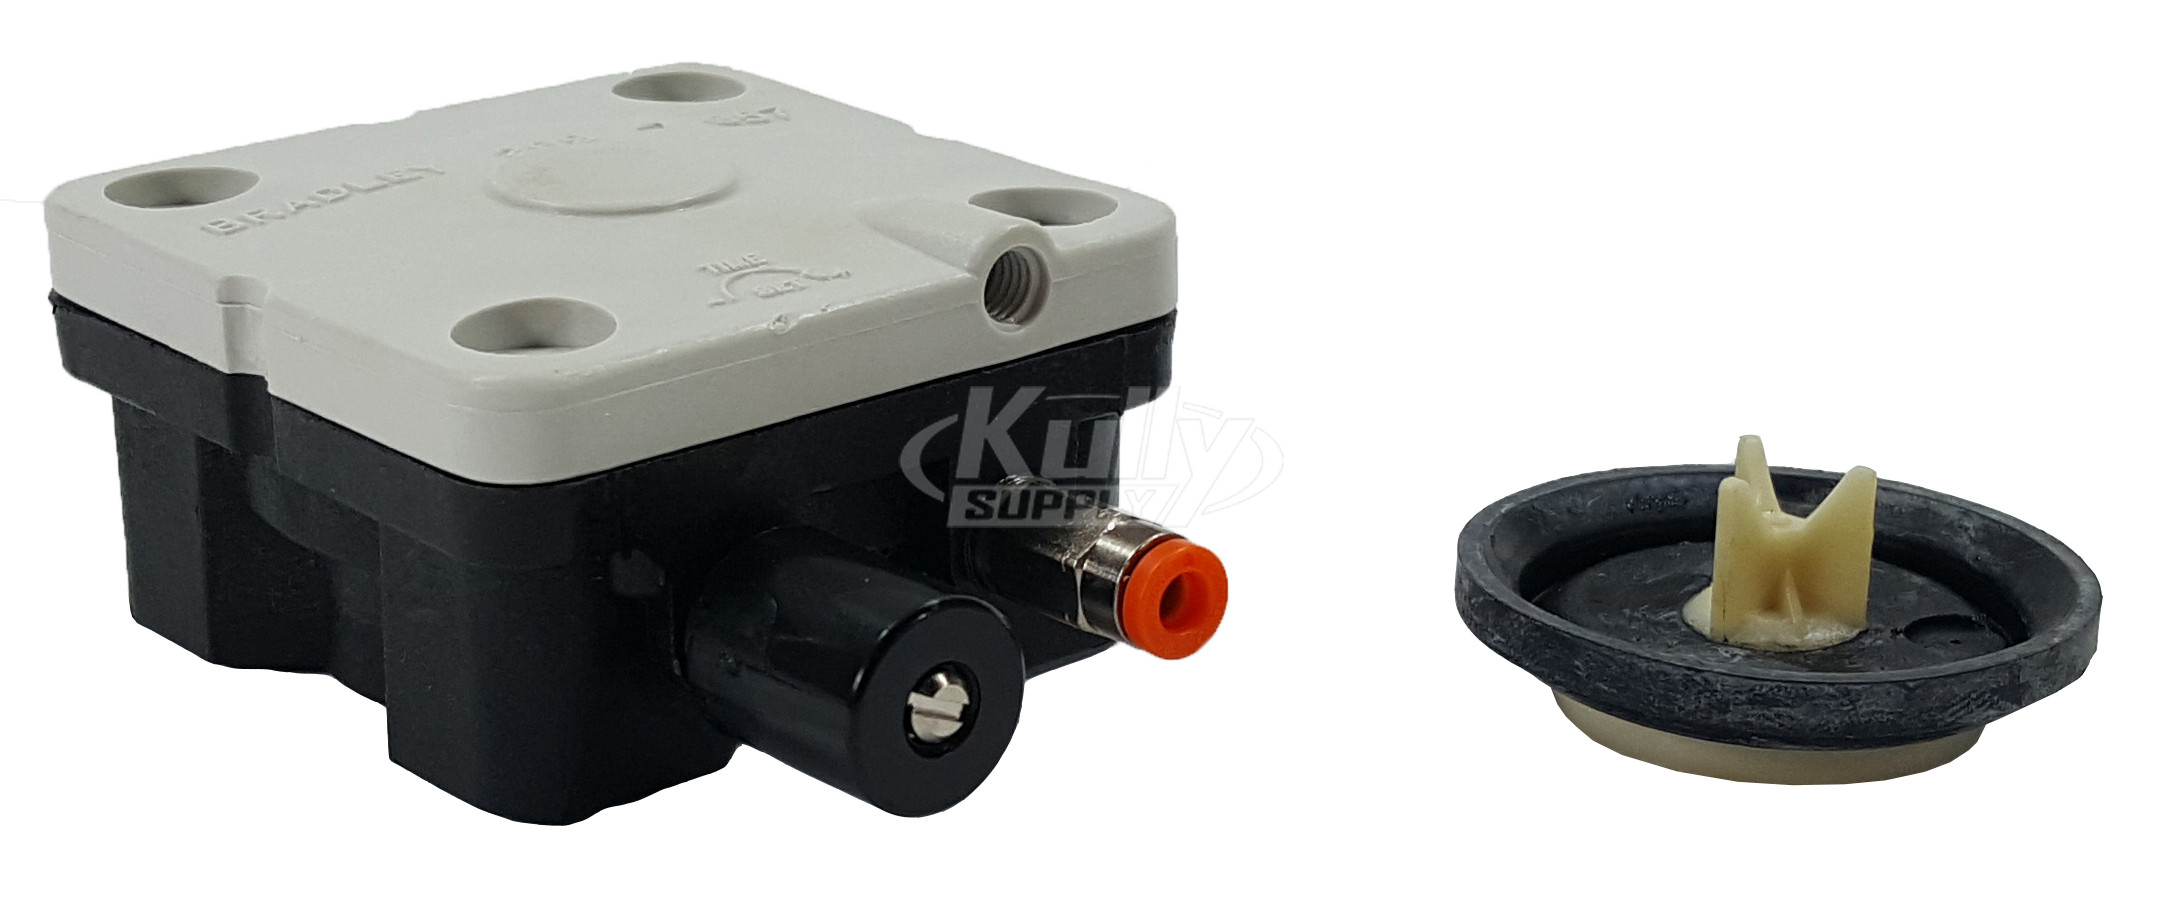 Bradley S73-054C AIR VALVE REPAIR KIT-SHOWER | KullySupply.com